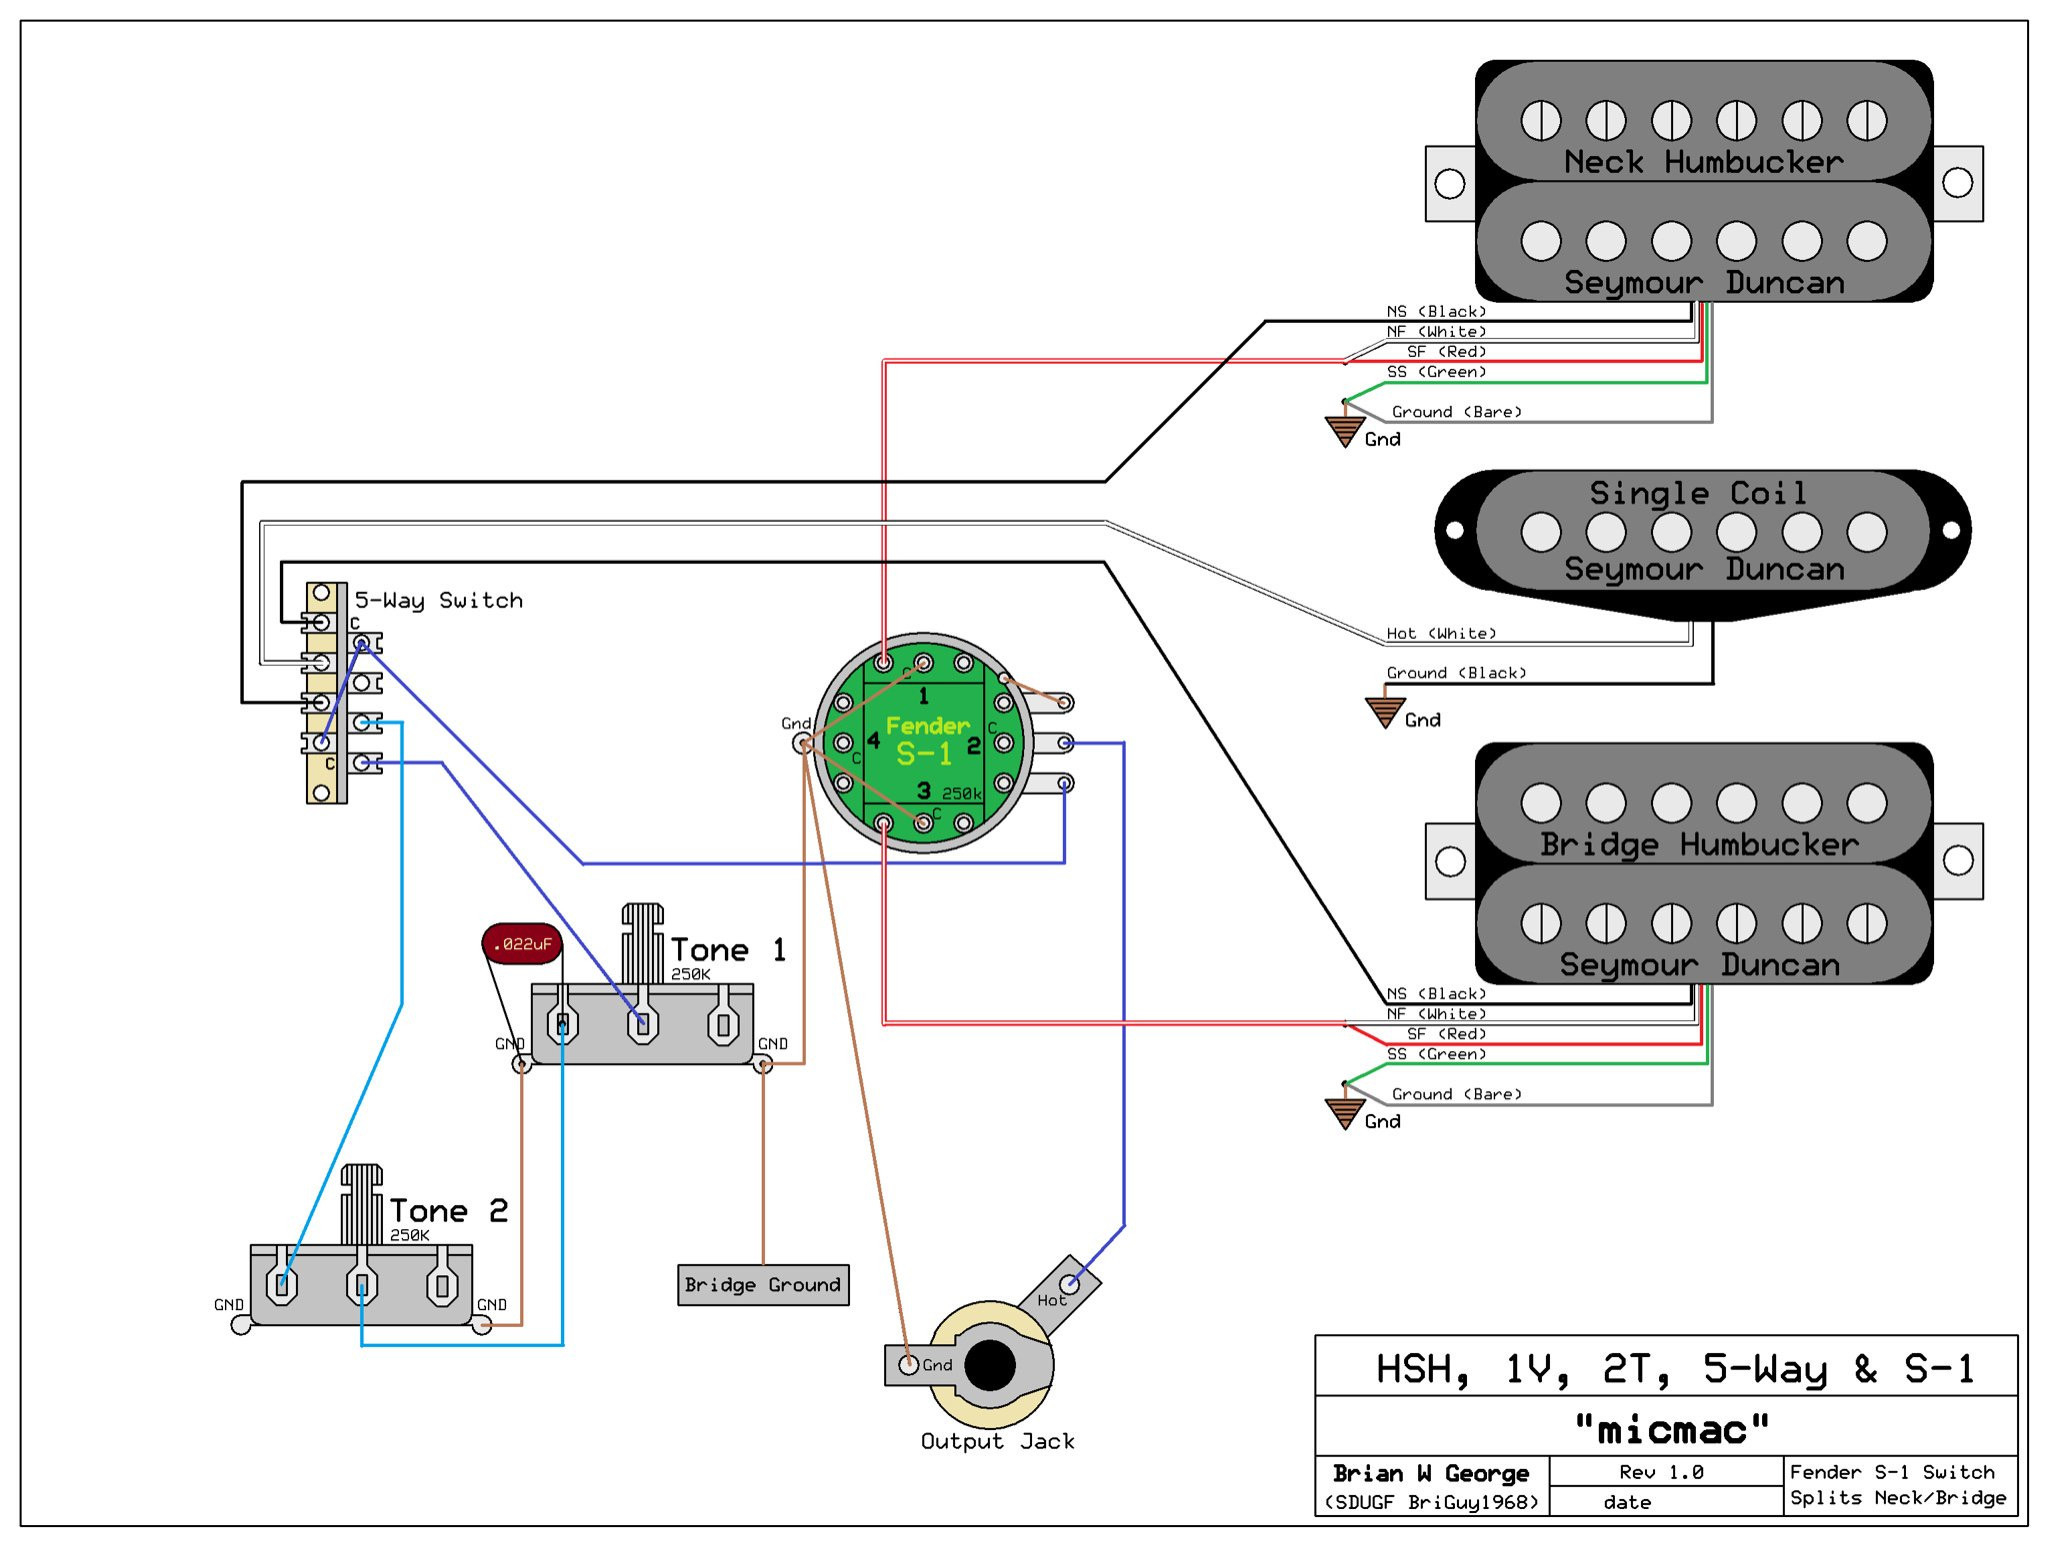 Hsh Wiring Diagram Guitar Perfect Wiring Diagram For 5 Way Guitar - Hsh Wiring Diagram